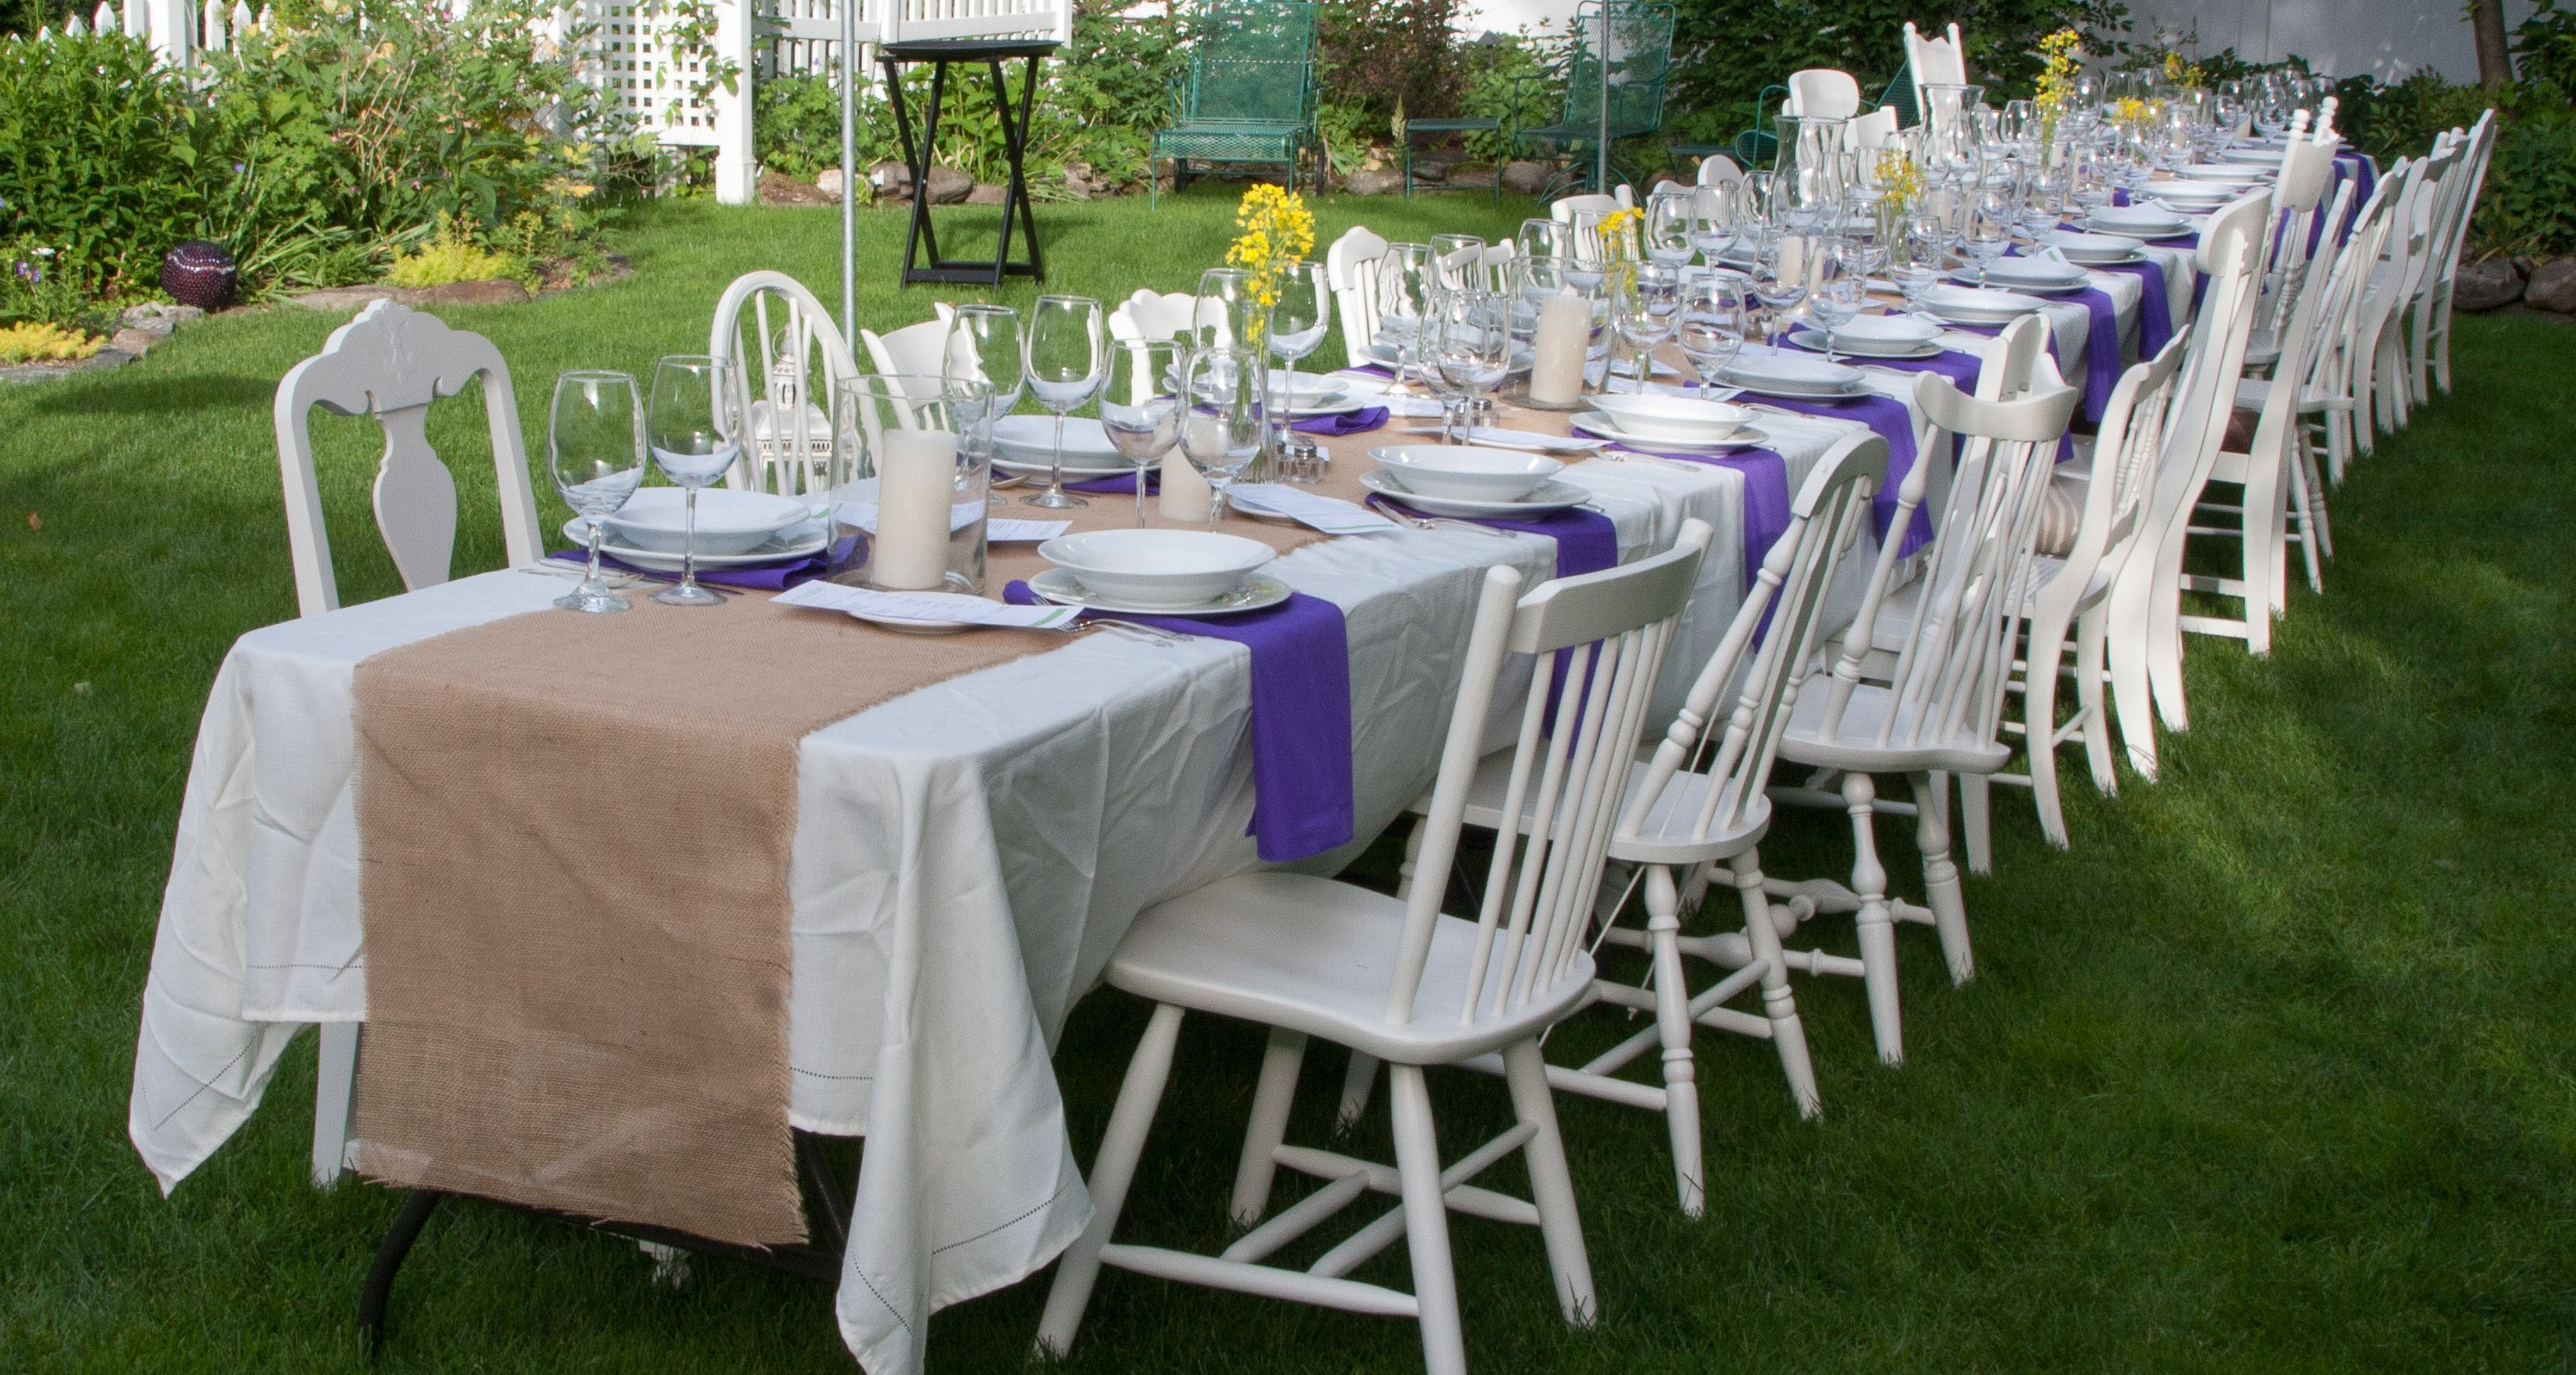 Farm to Table Dinner at the Phineas Swann Bed and Breakfast Inn near Jay Peak Vermont